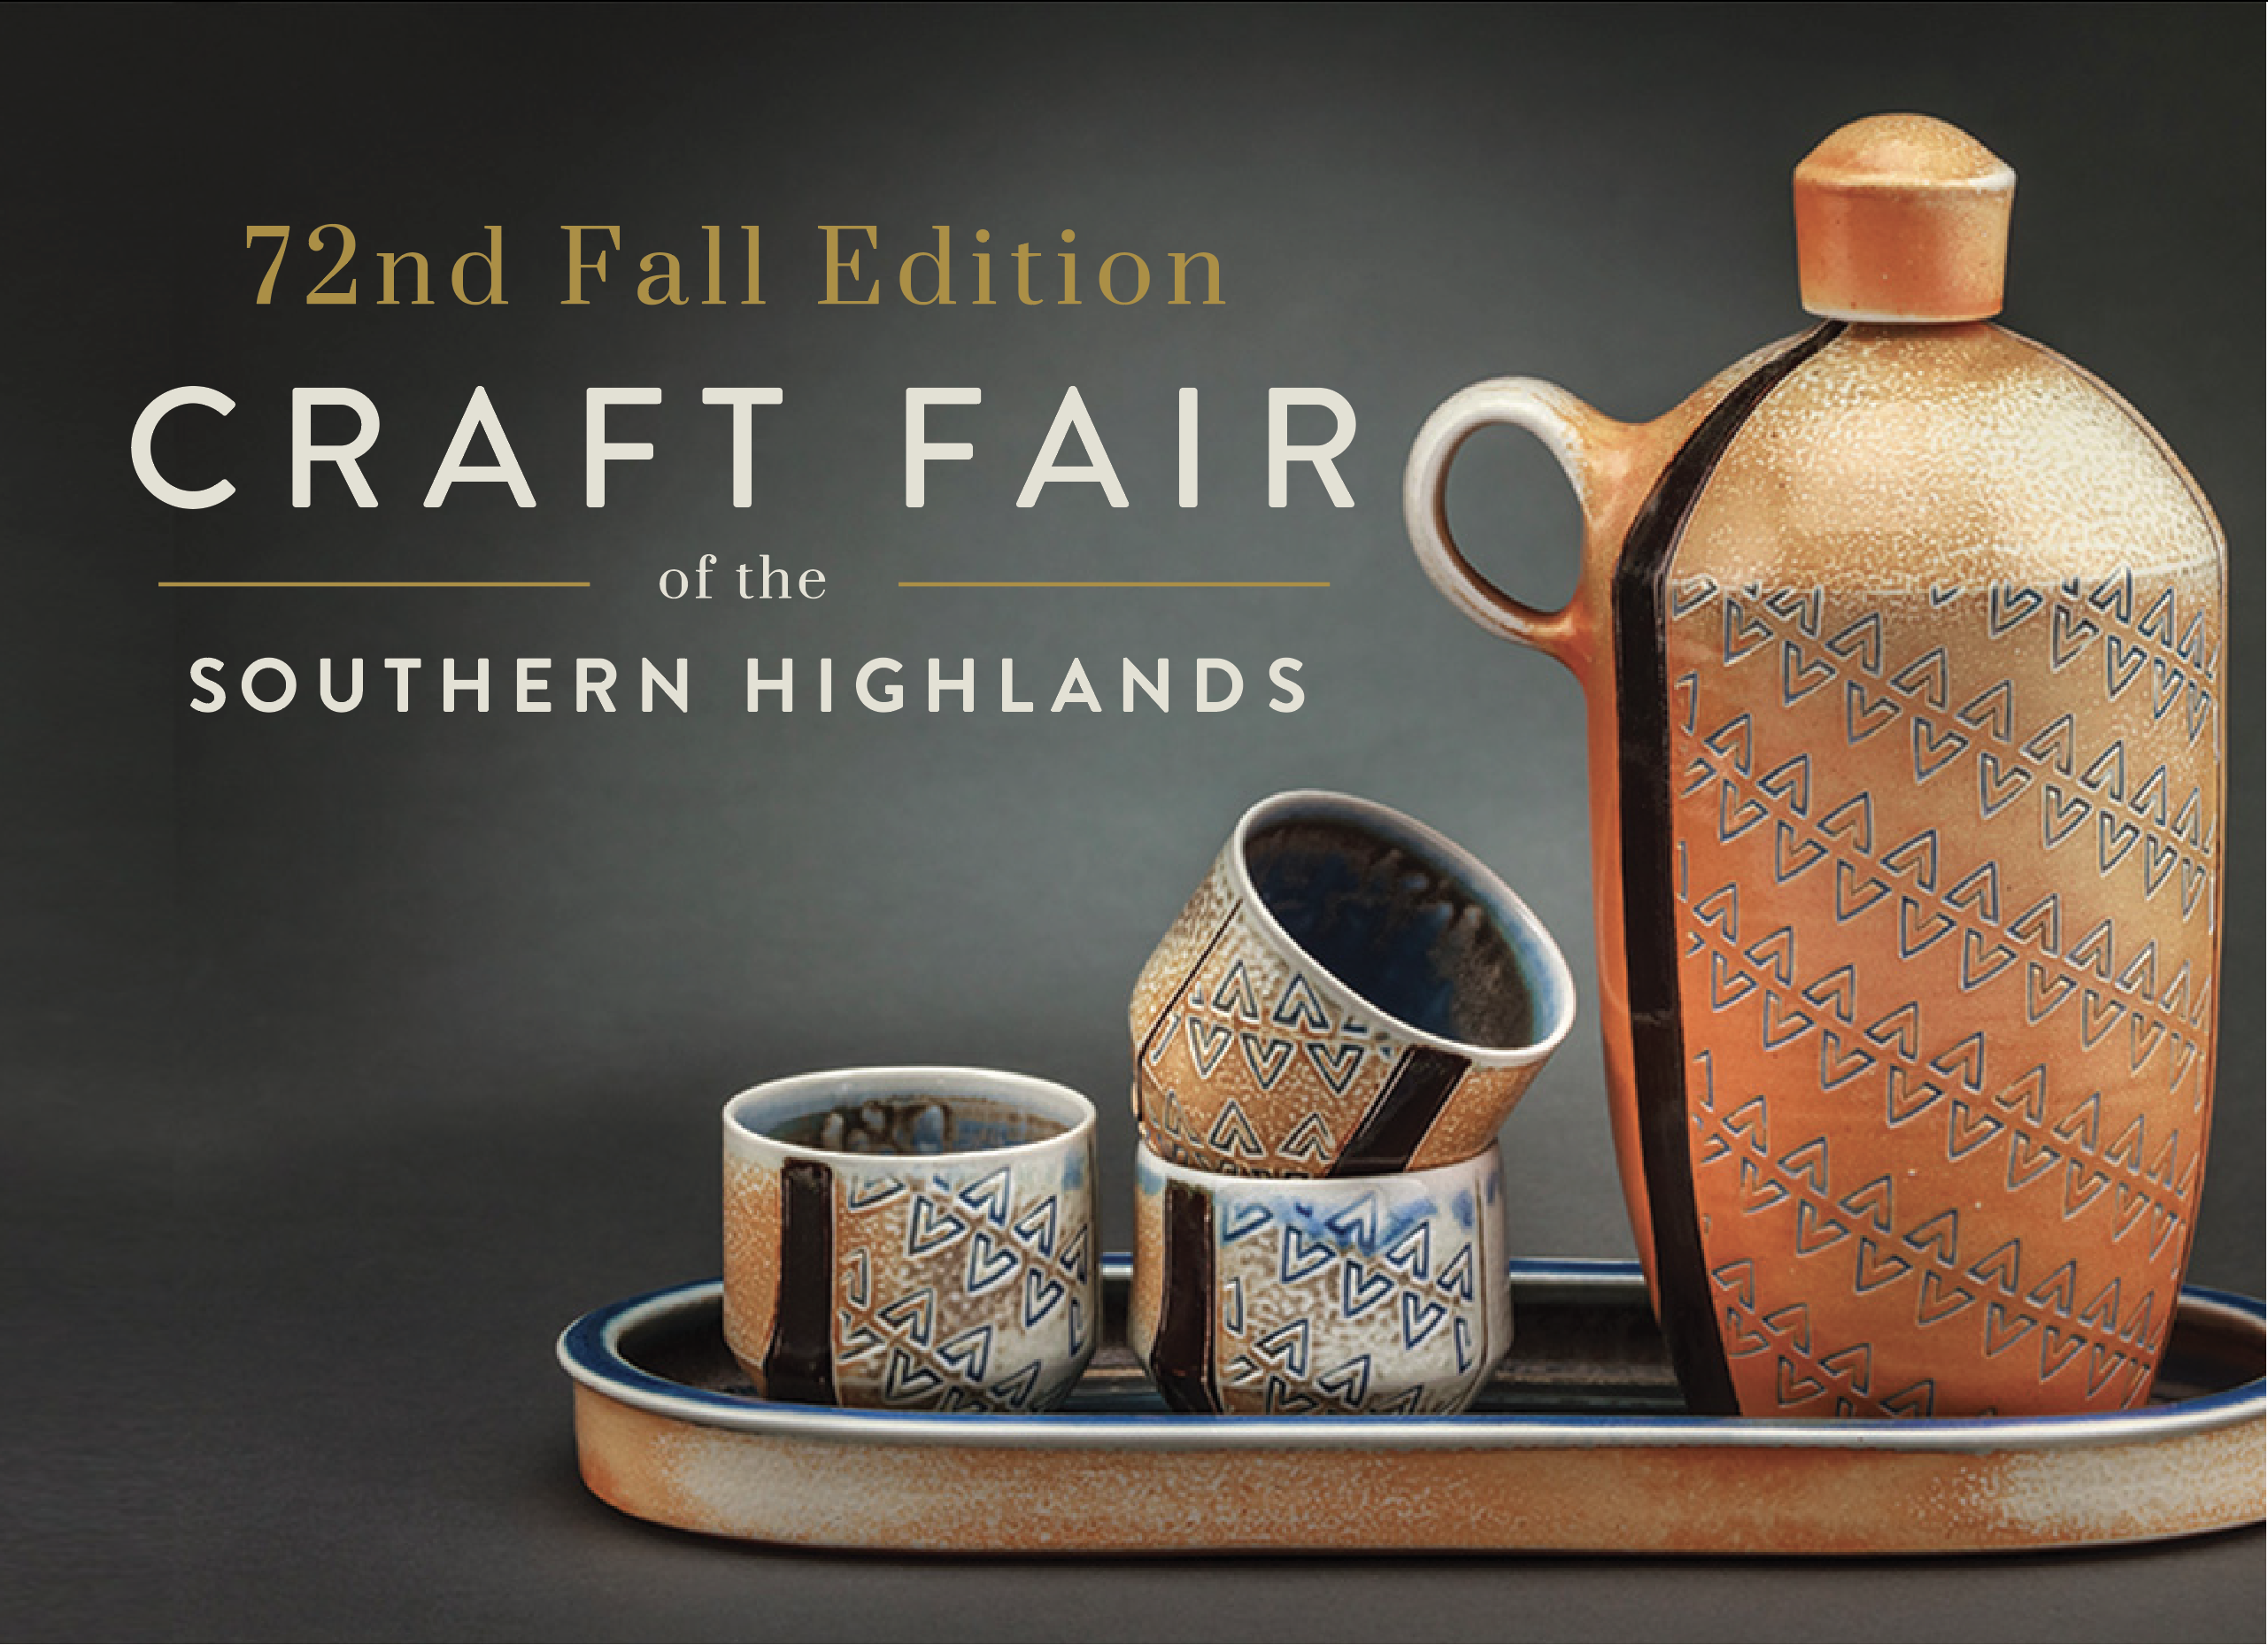 southern craft fair, asheville art events, asheville craft fair, southern highland craft guild, craft fair of the southern highlands,